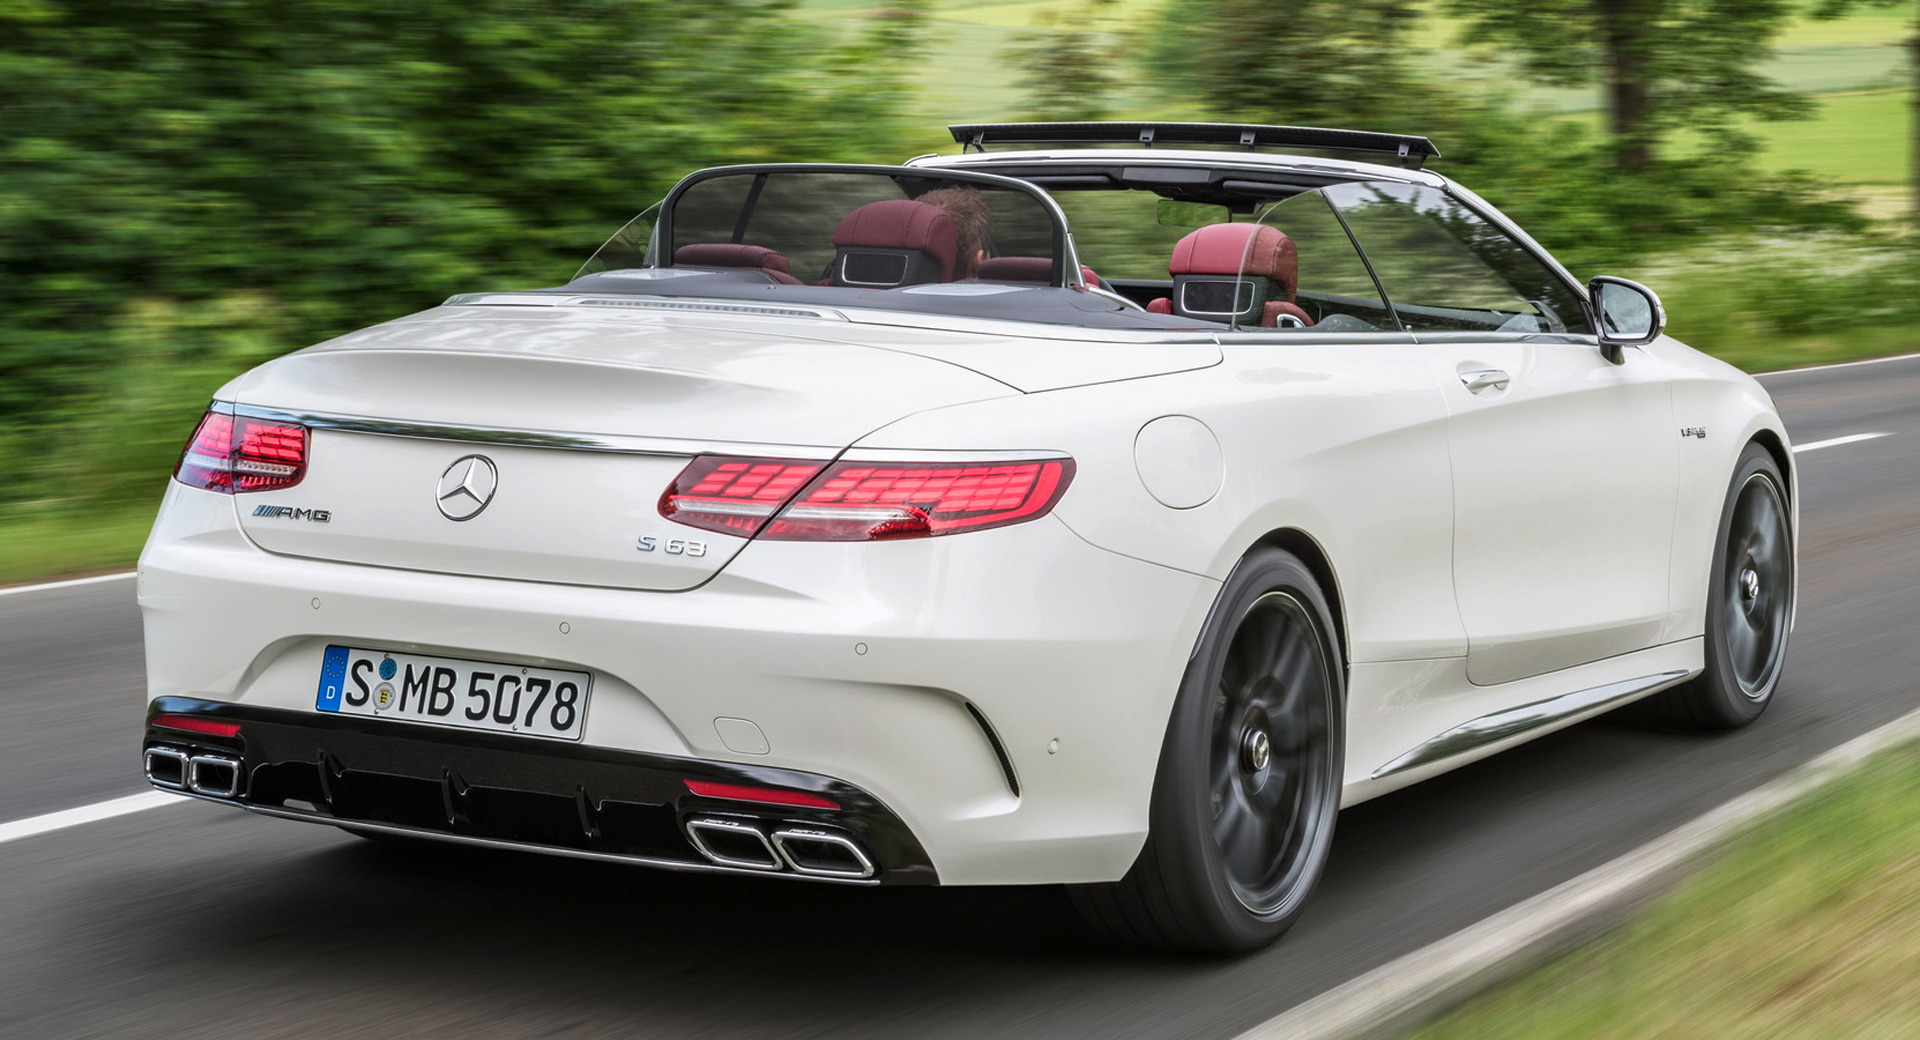 Mercedes Benz S Class Coupe And Cabriolet To Be Dropped To Save Costs Carscoops